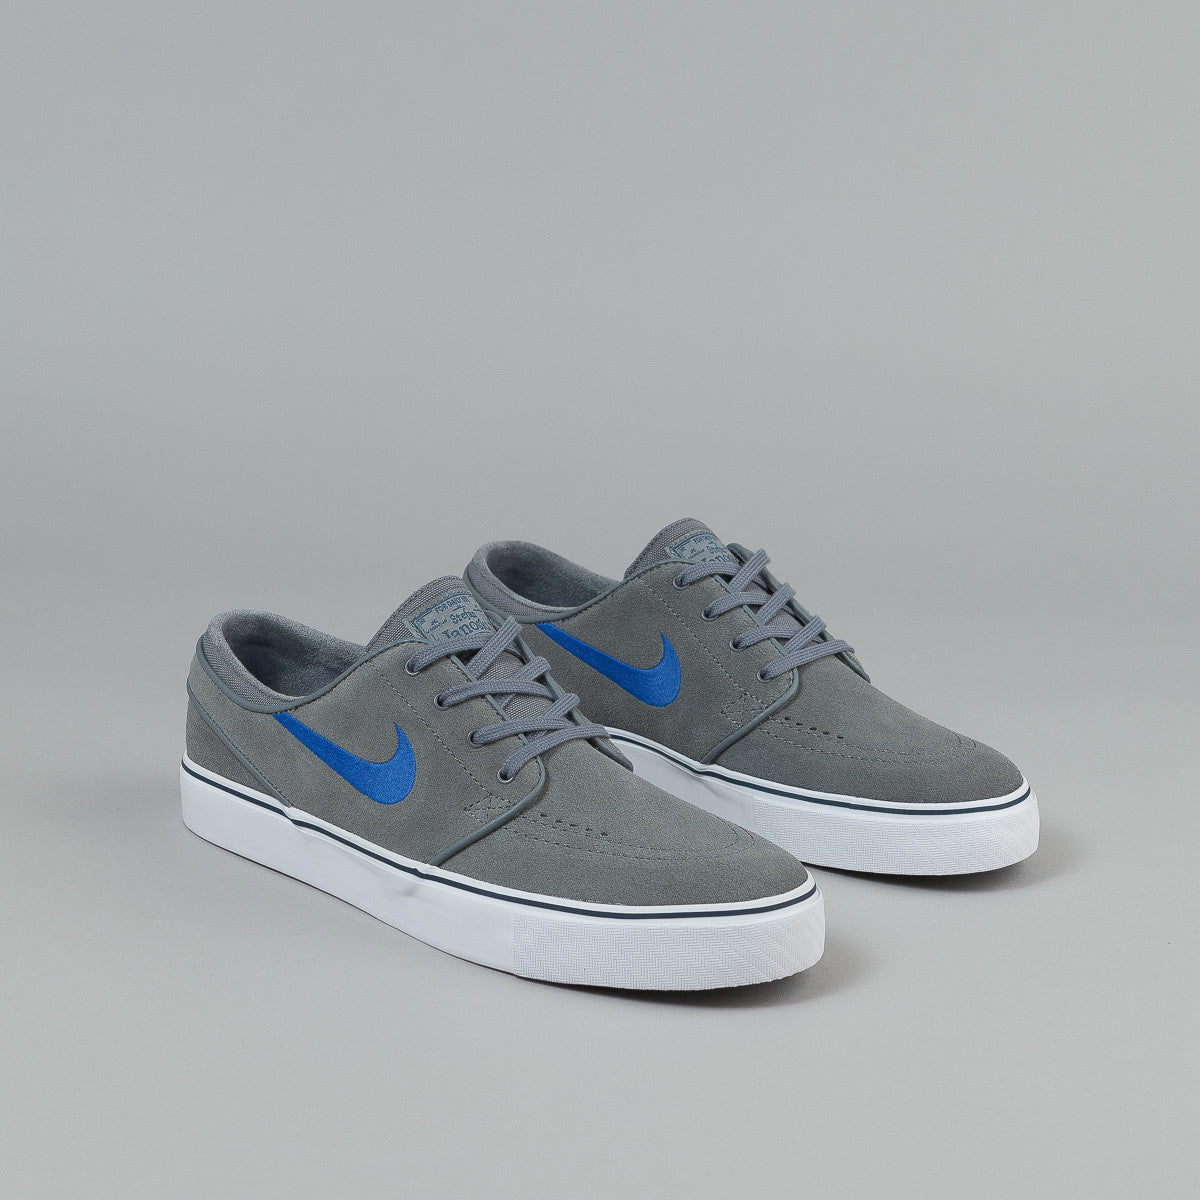 ... Nike SB Stefan Janoski Shoes - Cool Grey / Game Royal - Squadron Blue -  White ...